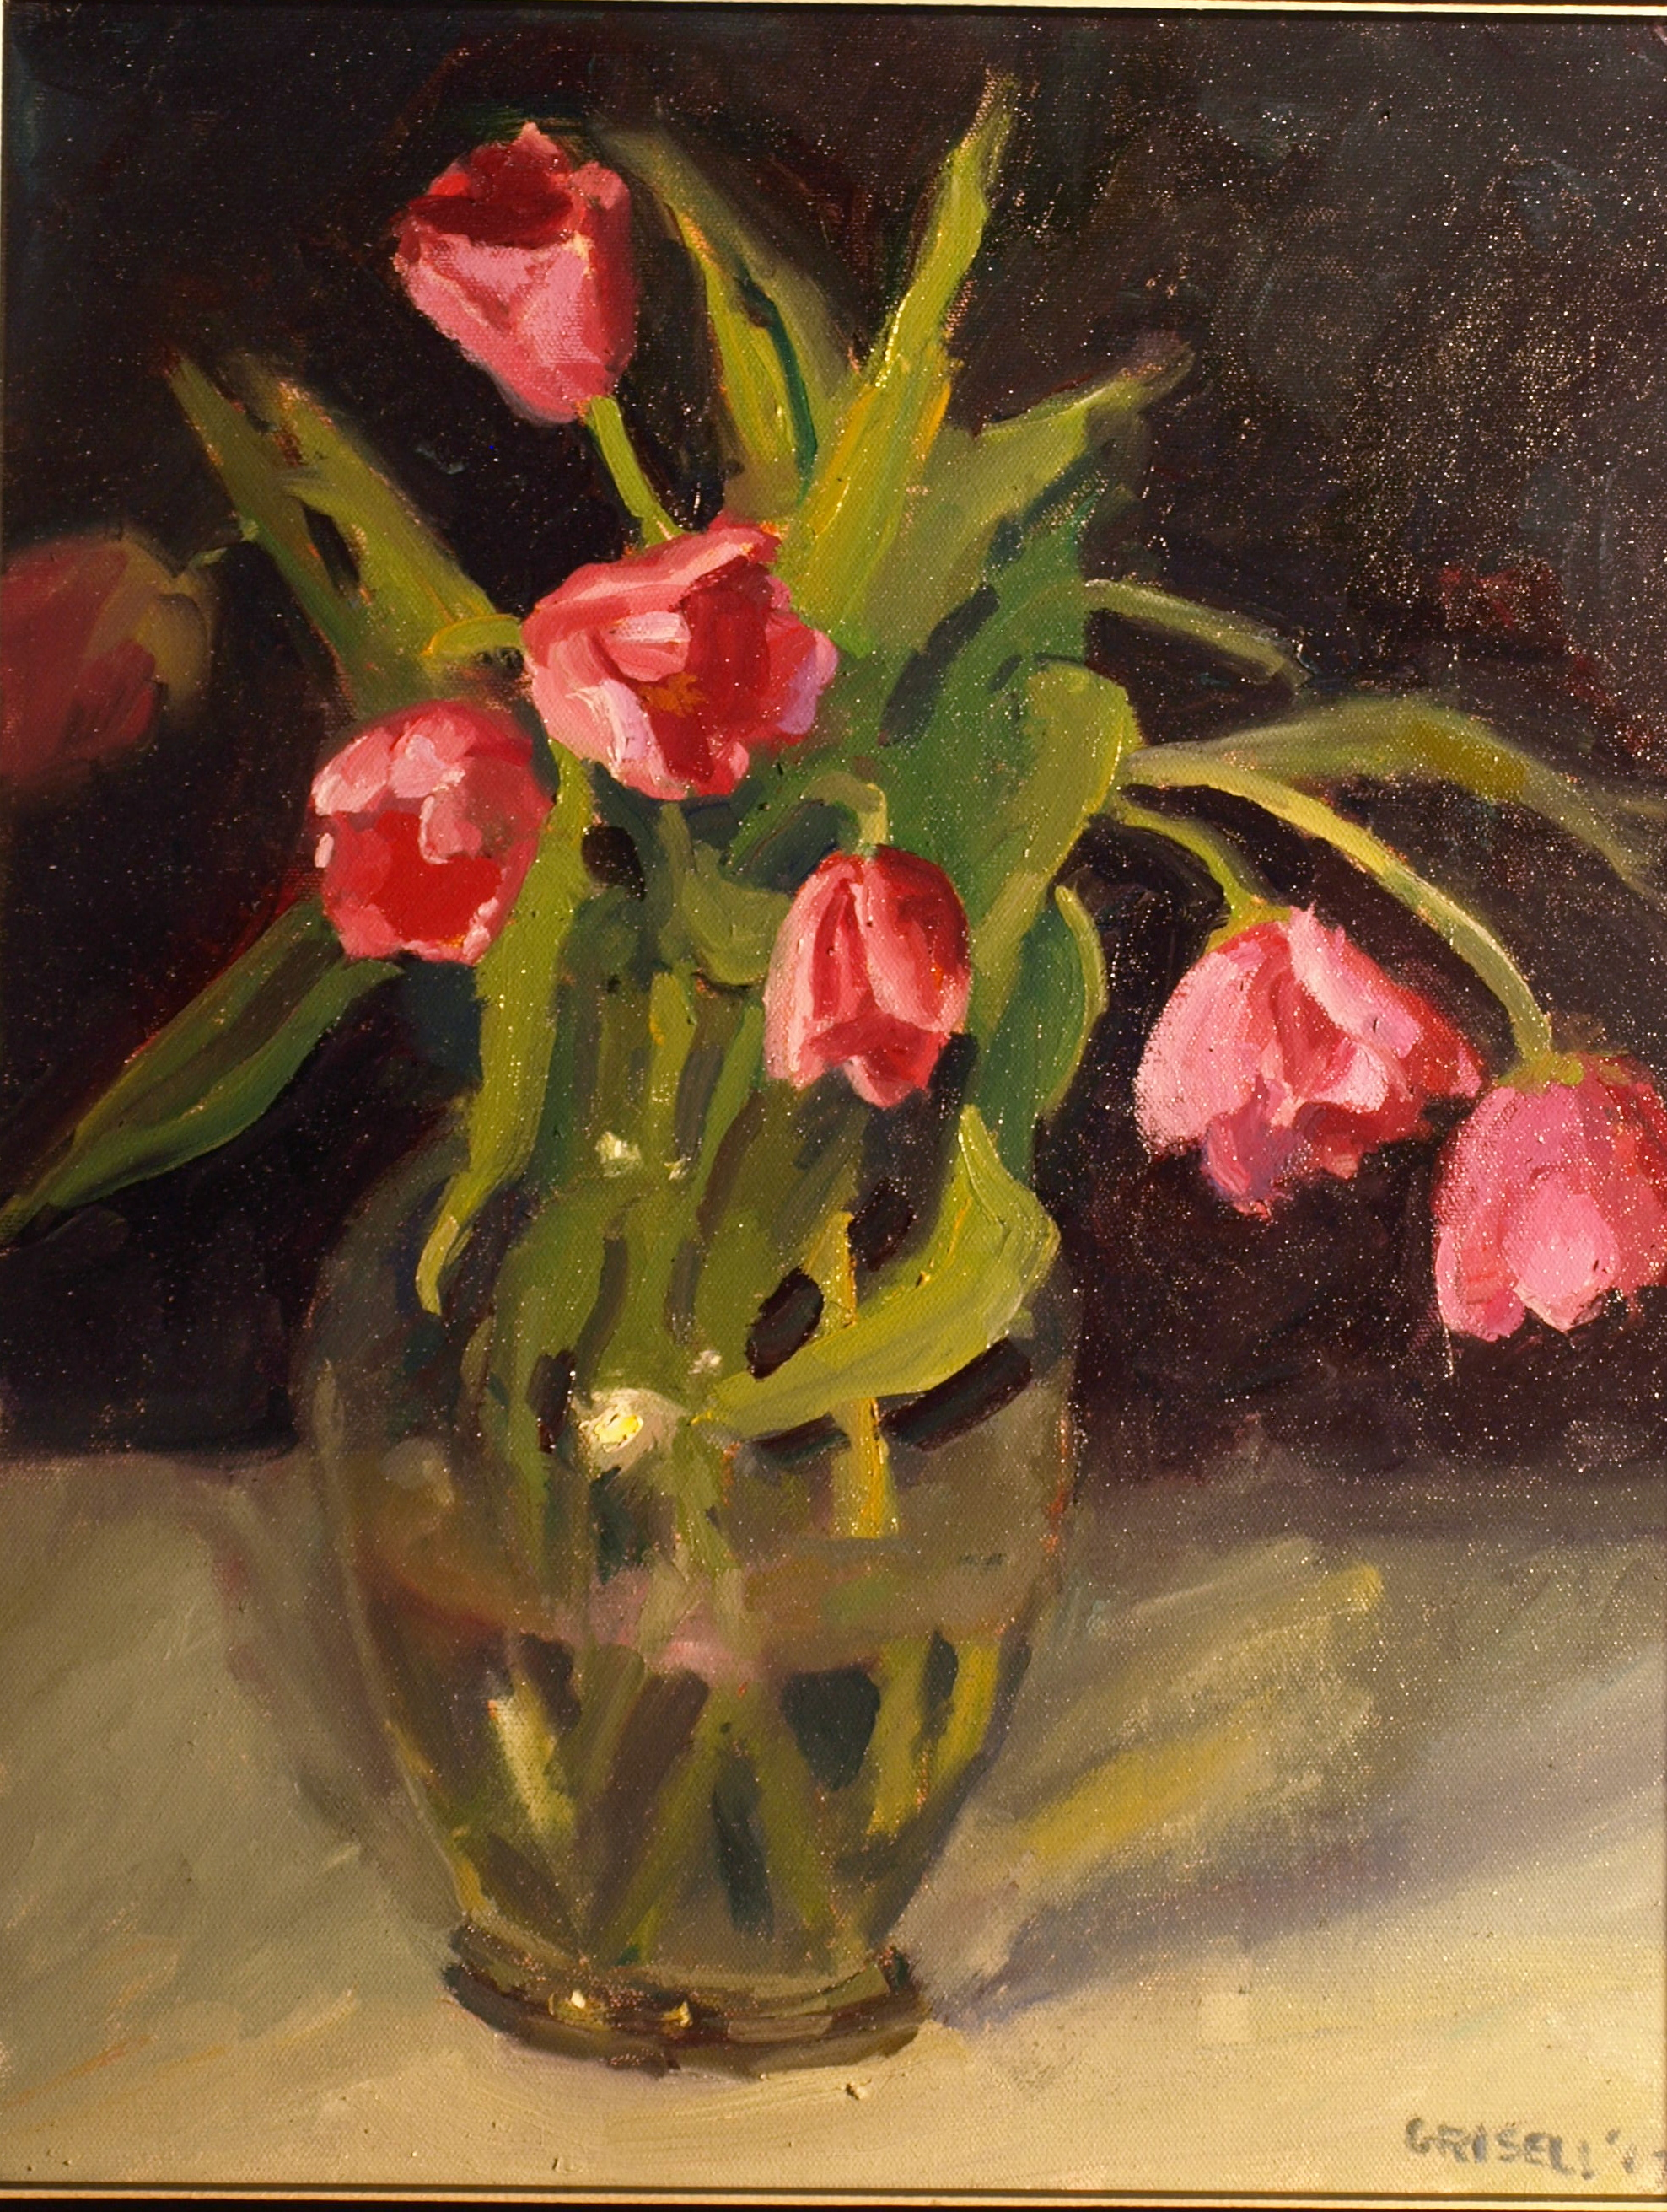 Pink Tulips, Oil on Canvas, 20 x 16 Inches, by Susan Grisell, $550